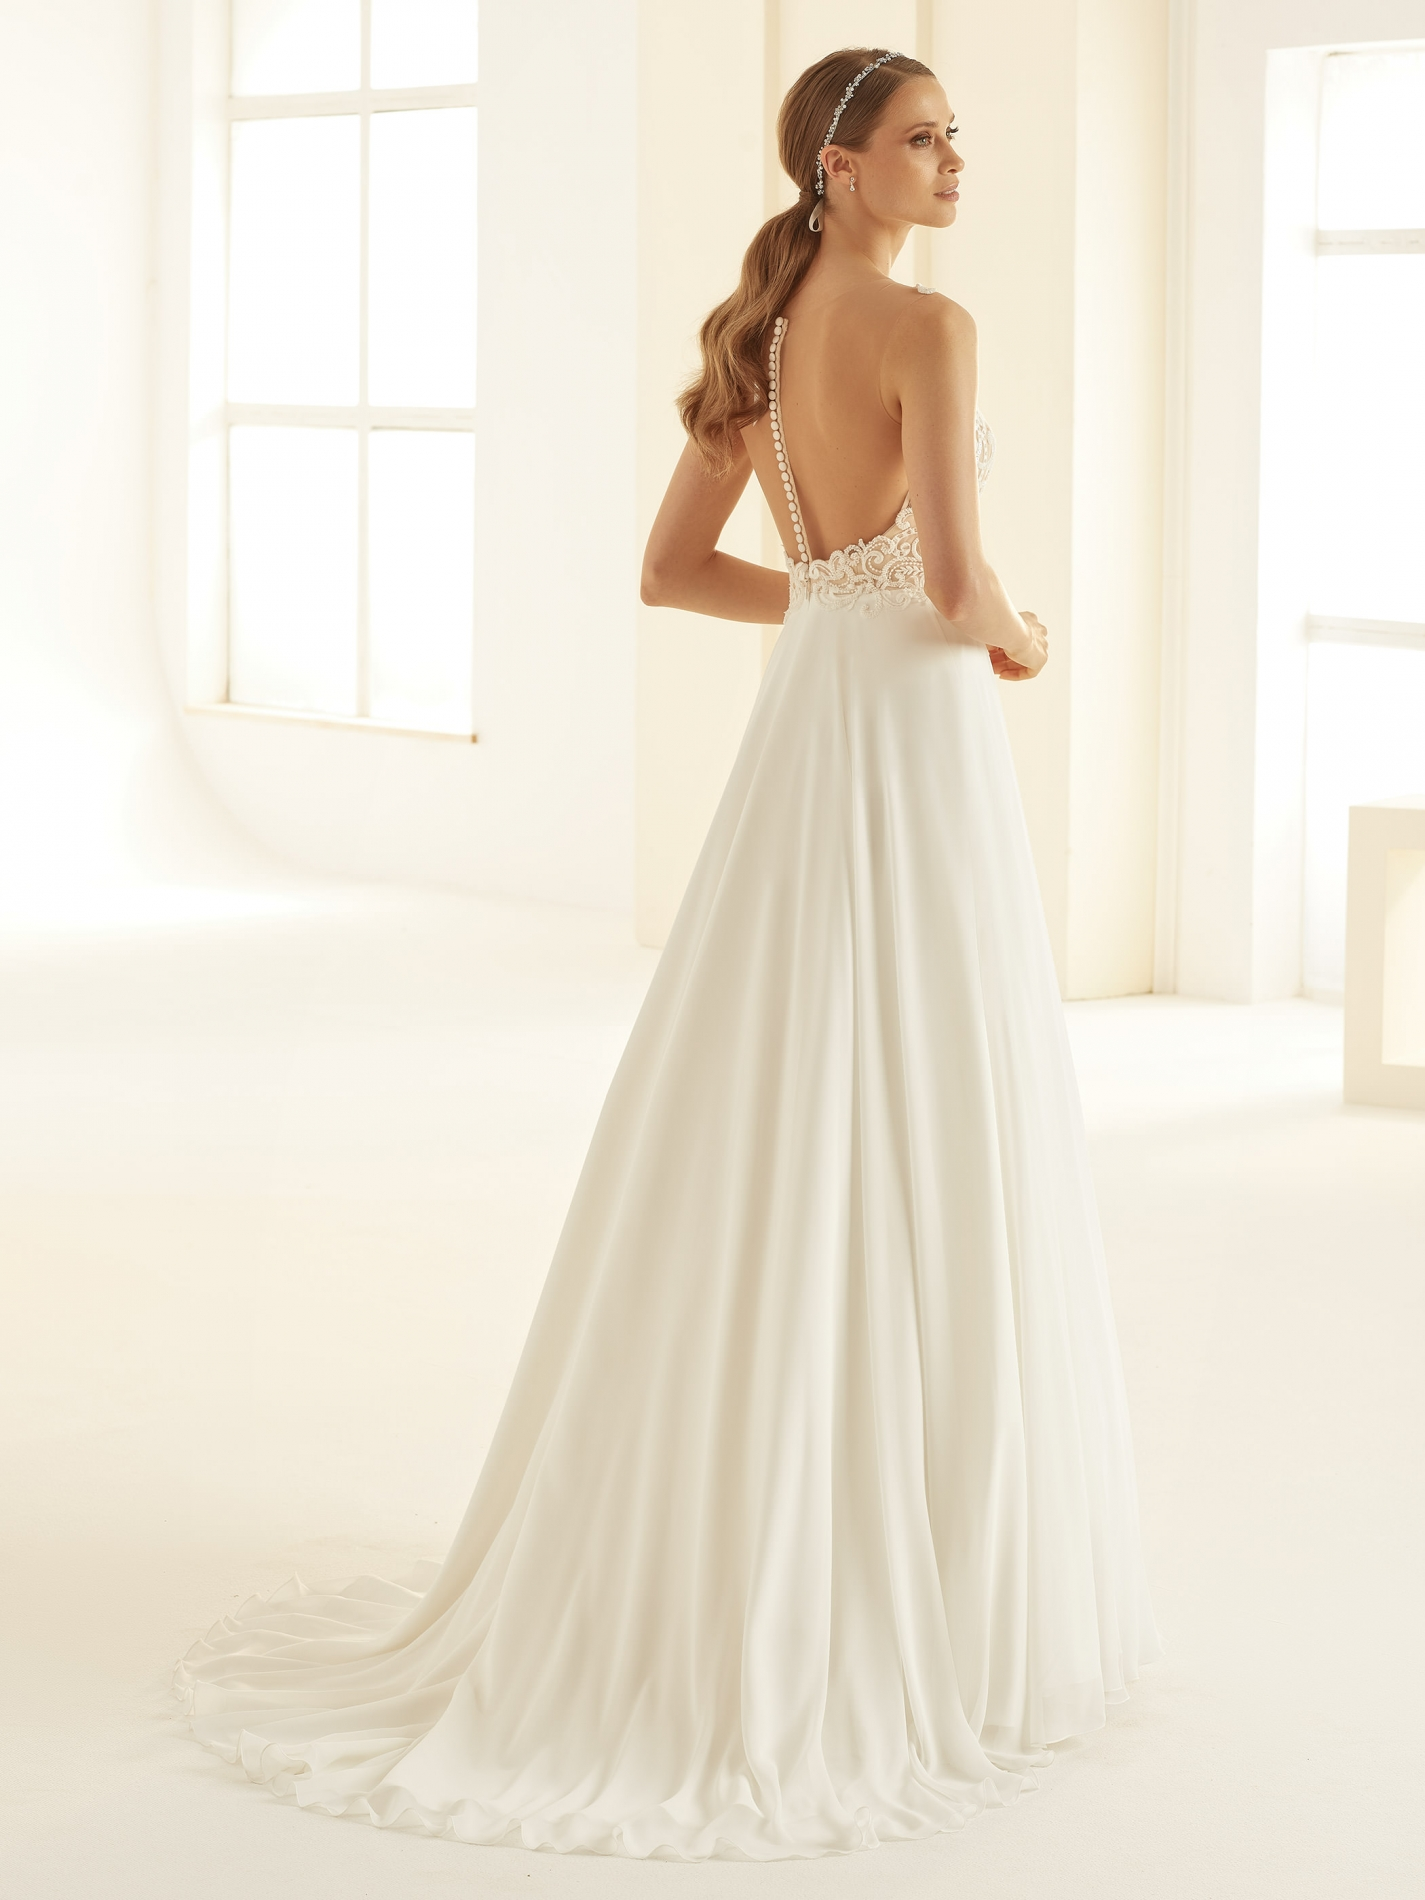 PANDORA_nude-Bianco-Evento-bridal-dress-(3)